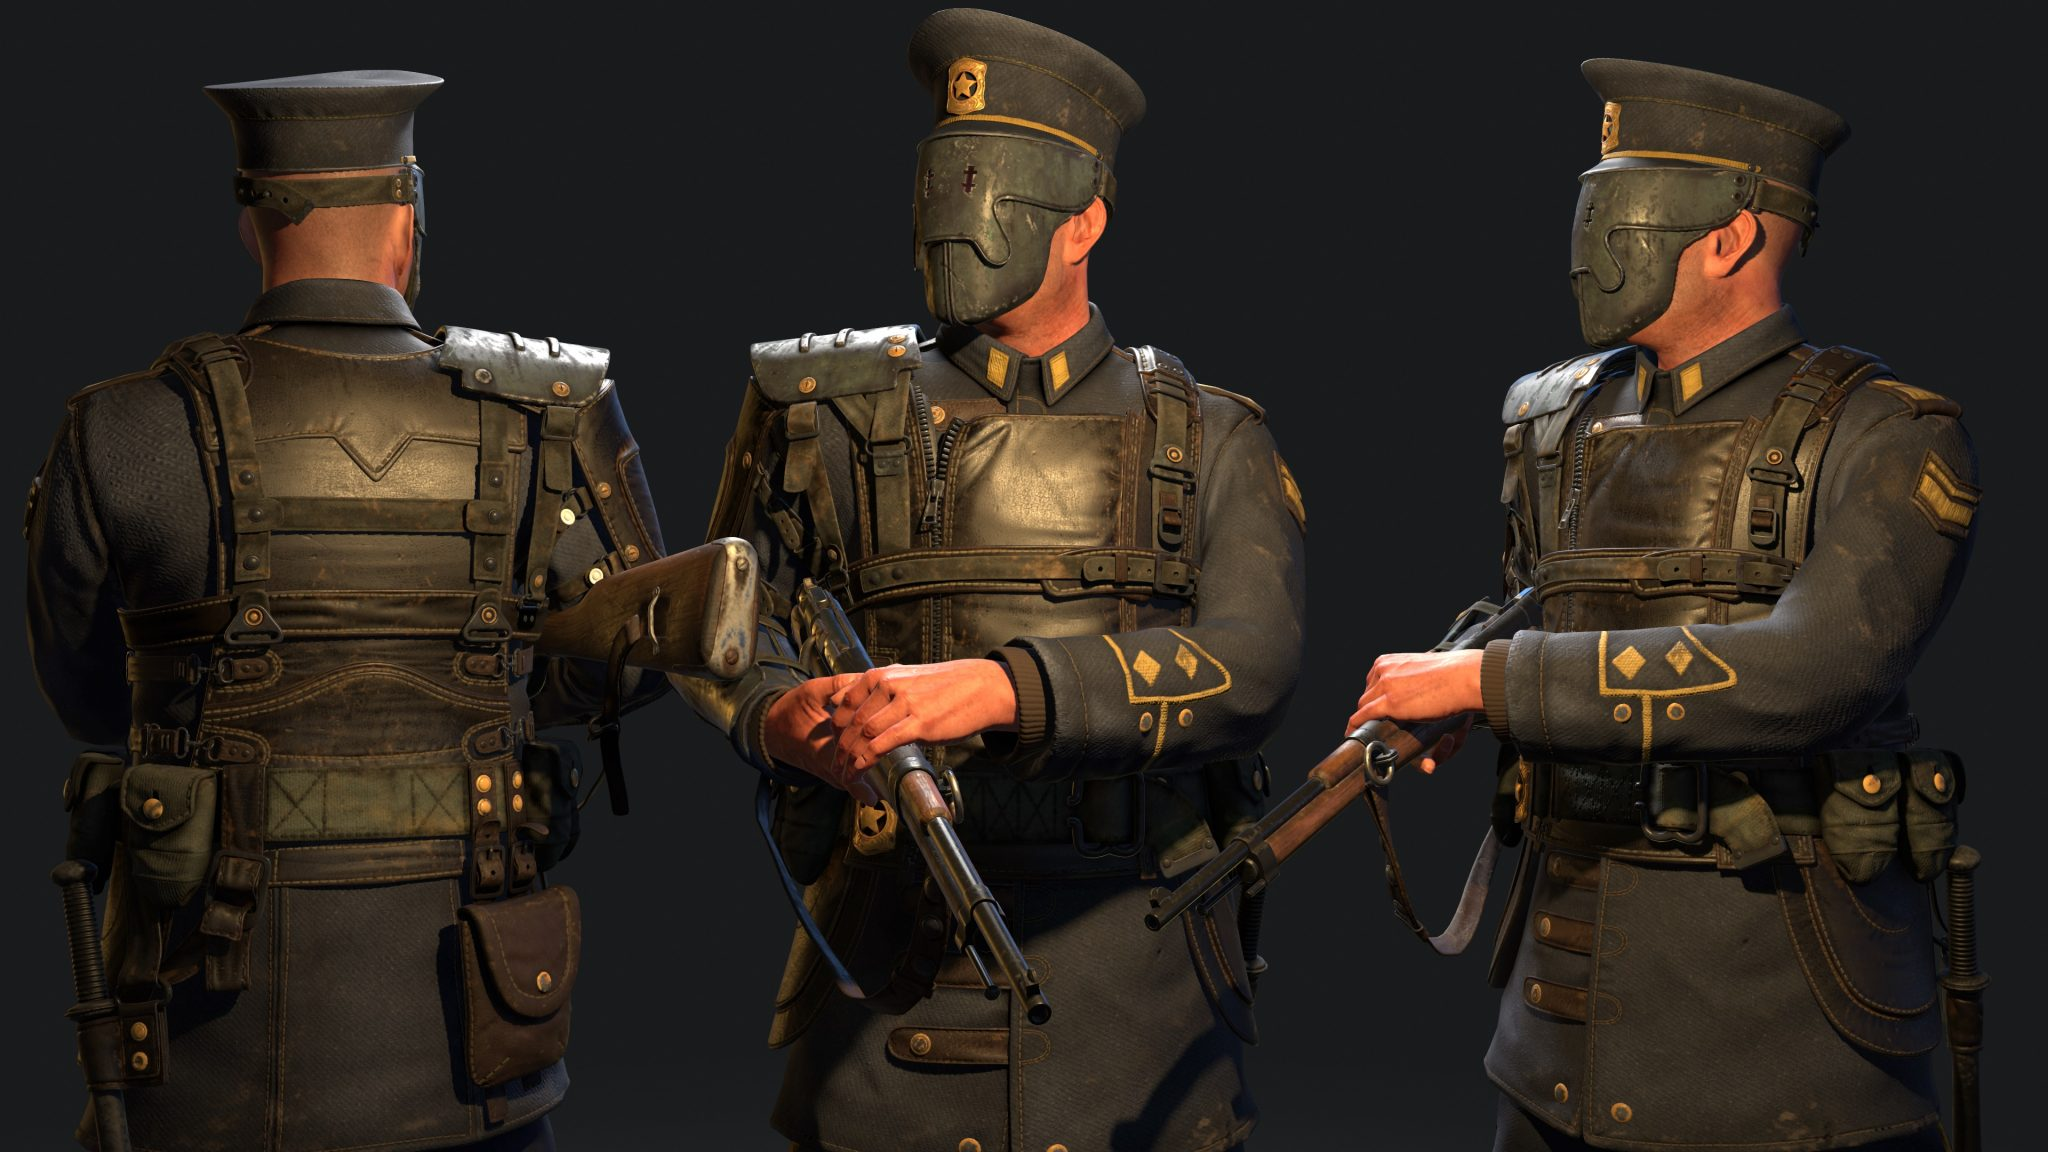 Dieselpunk 3D Character: The Police Officer